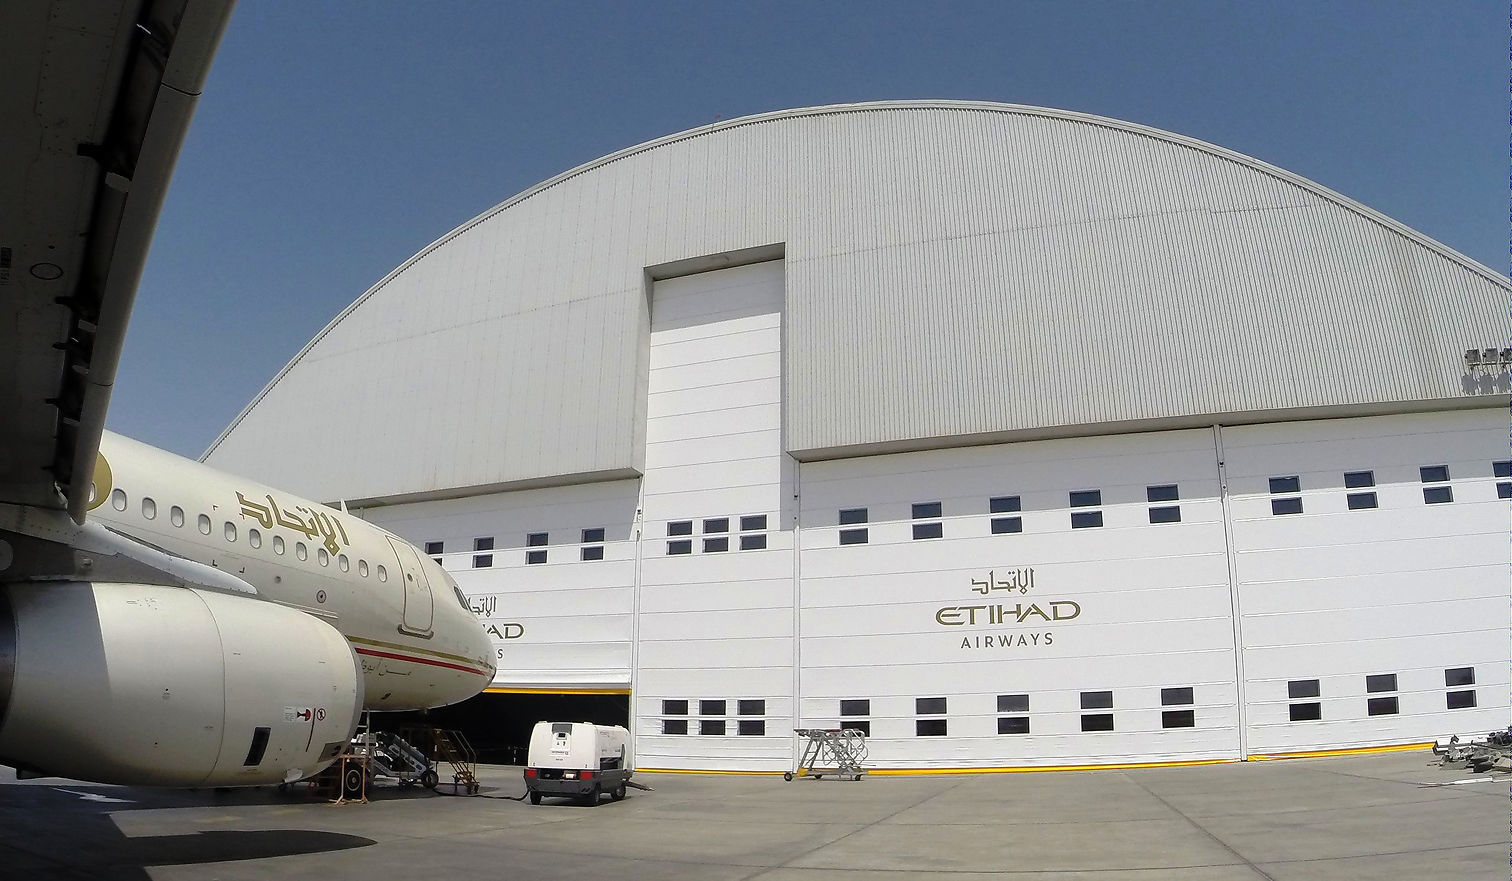 Fold-up doors / for civil and military aviation / hangar / fabric Jumbo jet ... & Fold-up doors / for civil and military aviation / hangar / fabric ... Pezcame.Com